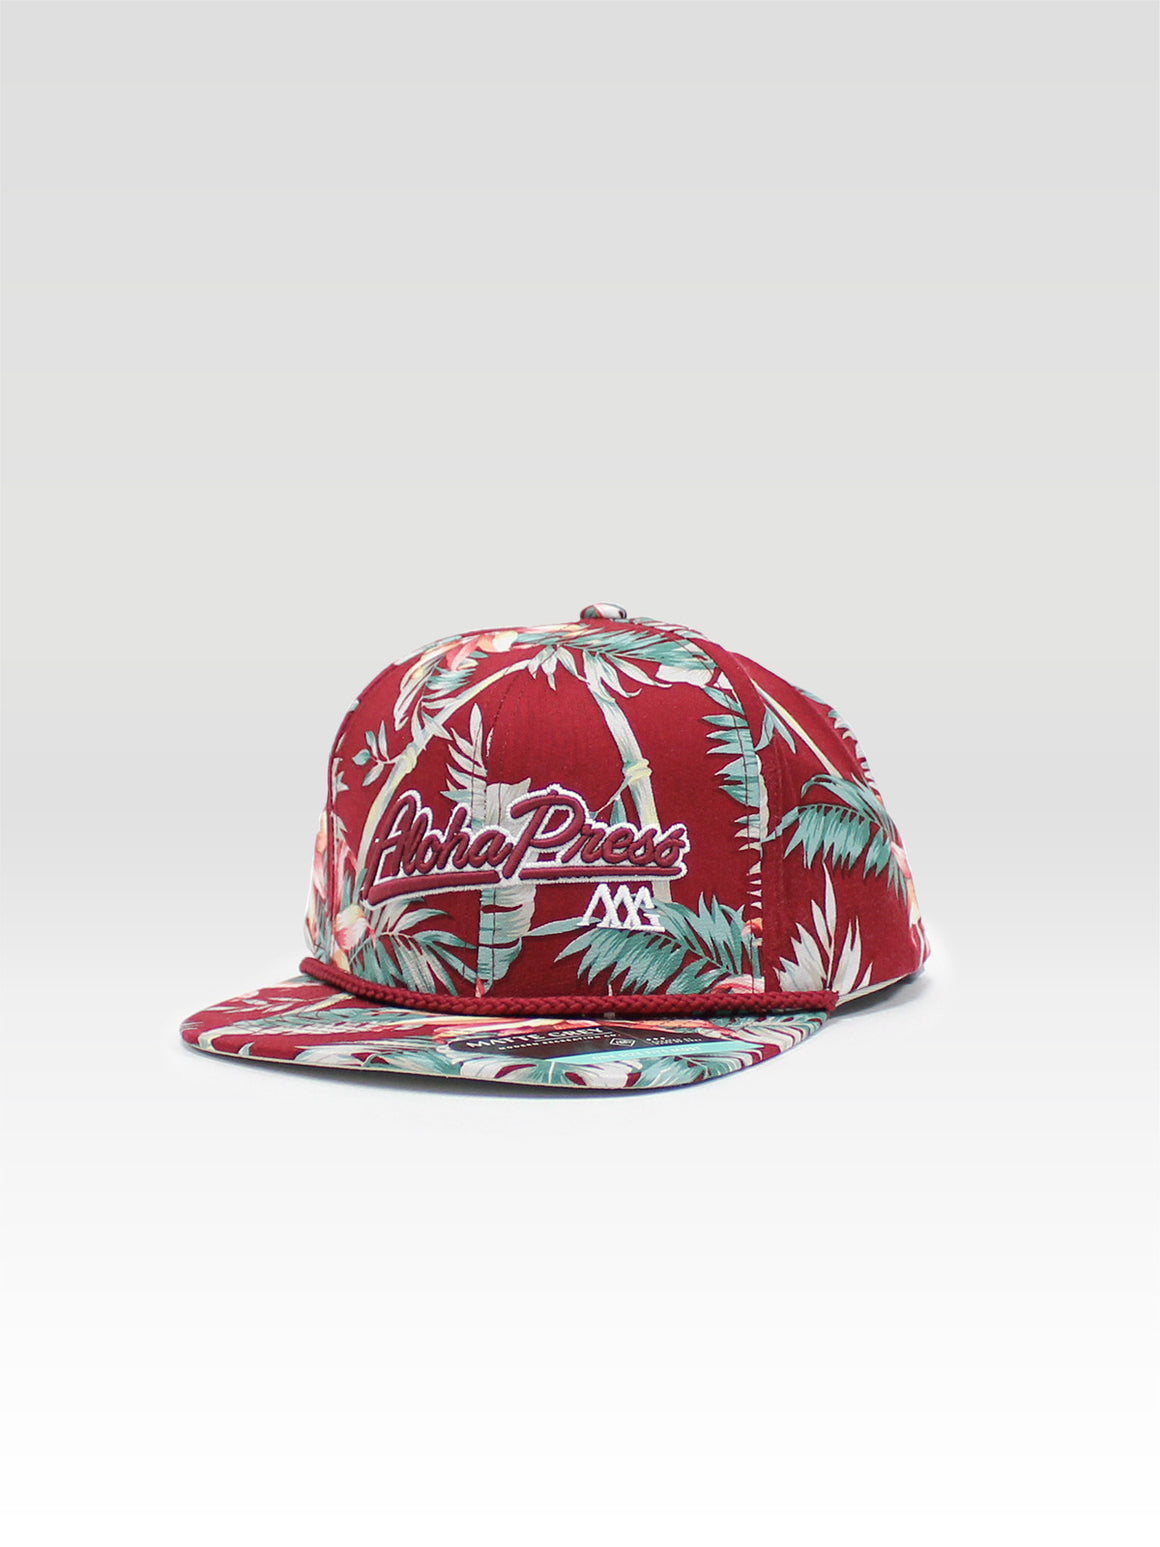 Aloha Press Strapback - Maroon (Maroon / White)